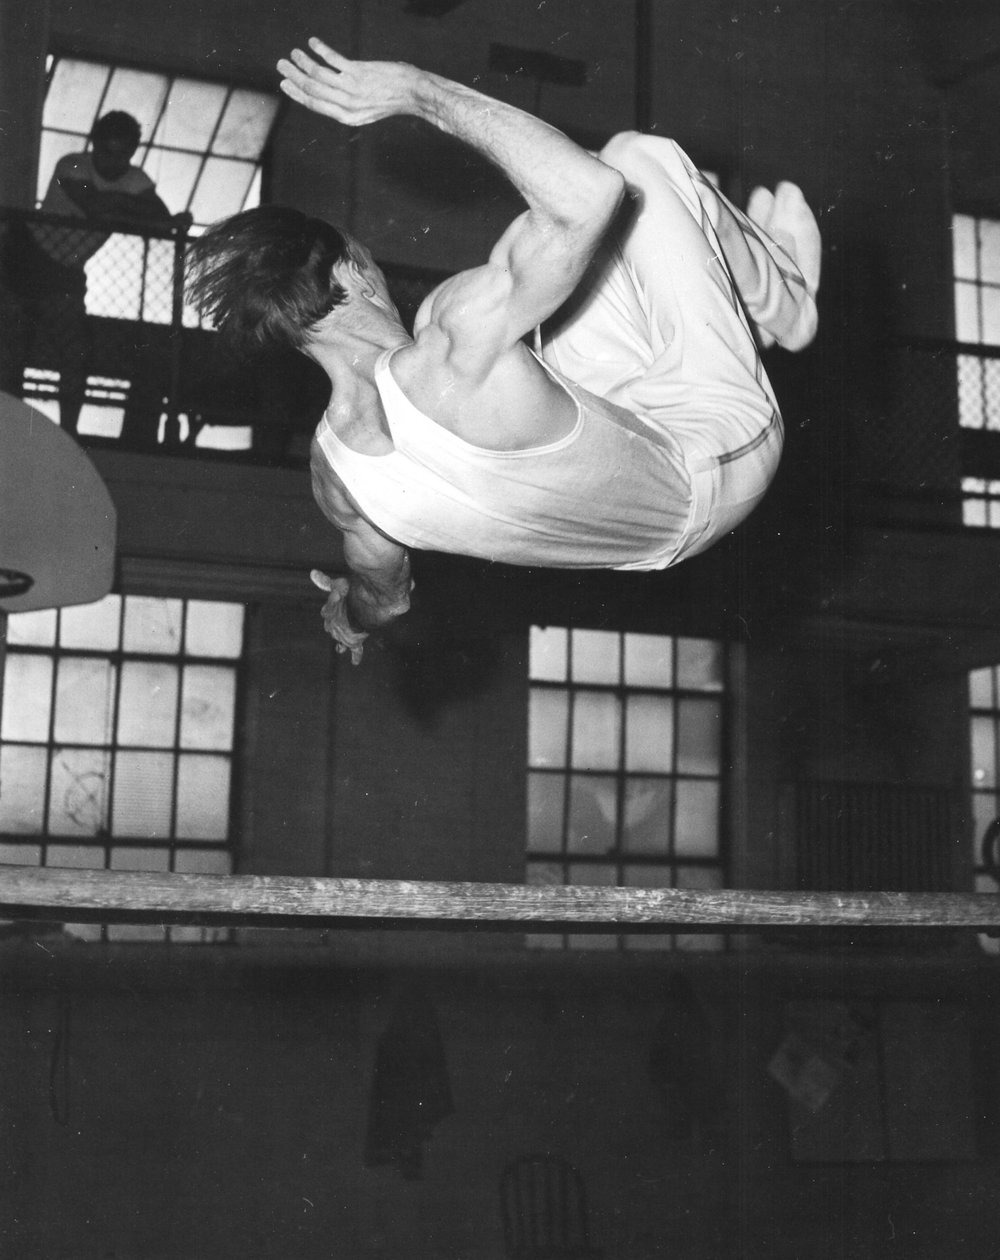 Joe Herring on Parallel Bars (1950)